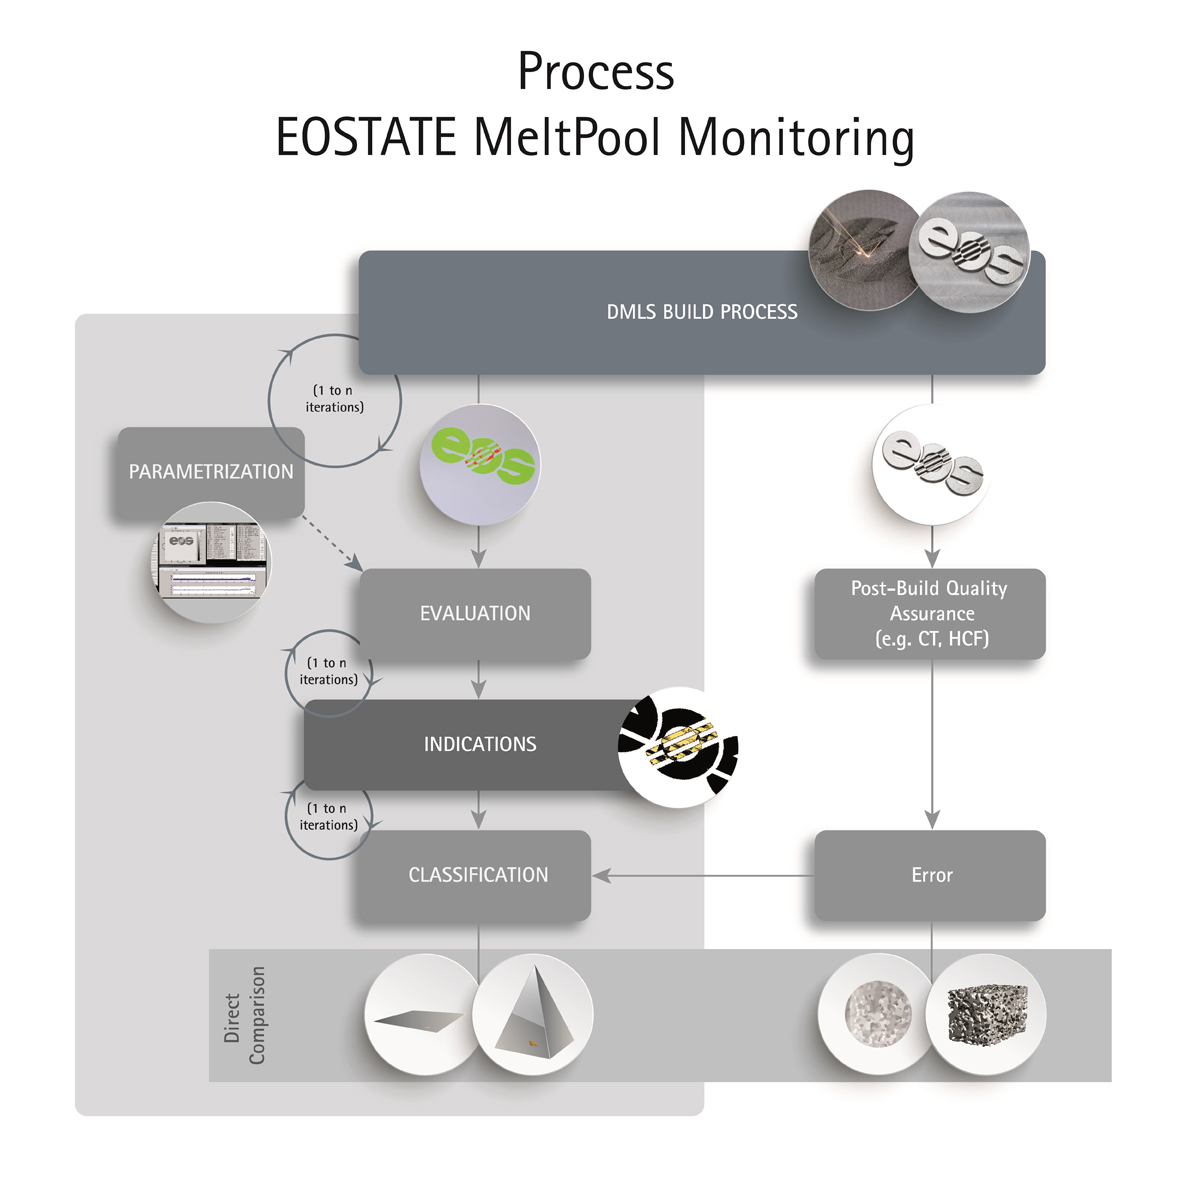 EOS_Process_EOSTATE_MeltPool metal 3D printing monitoring